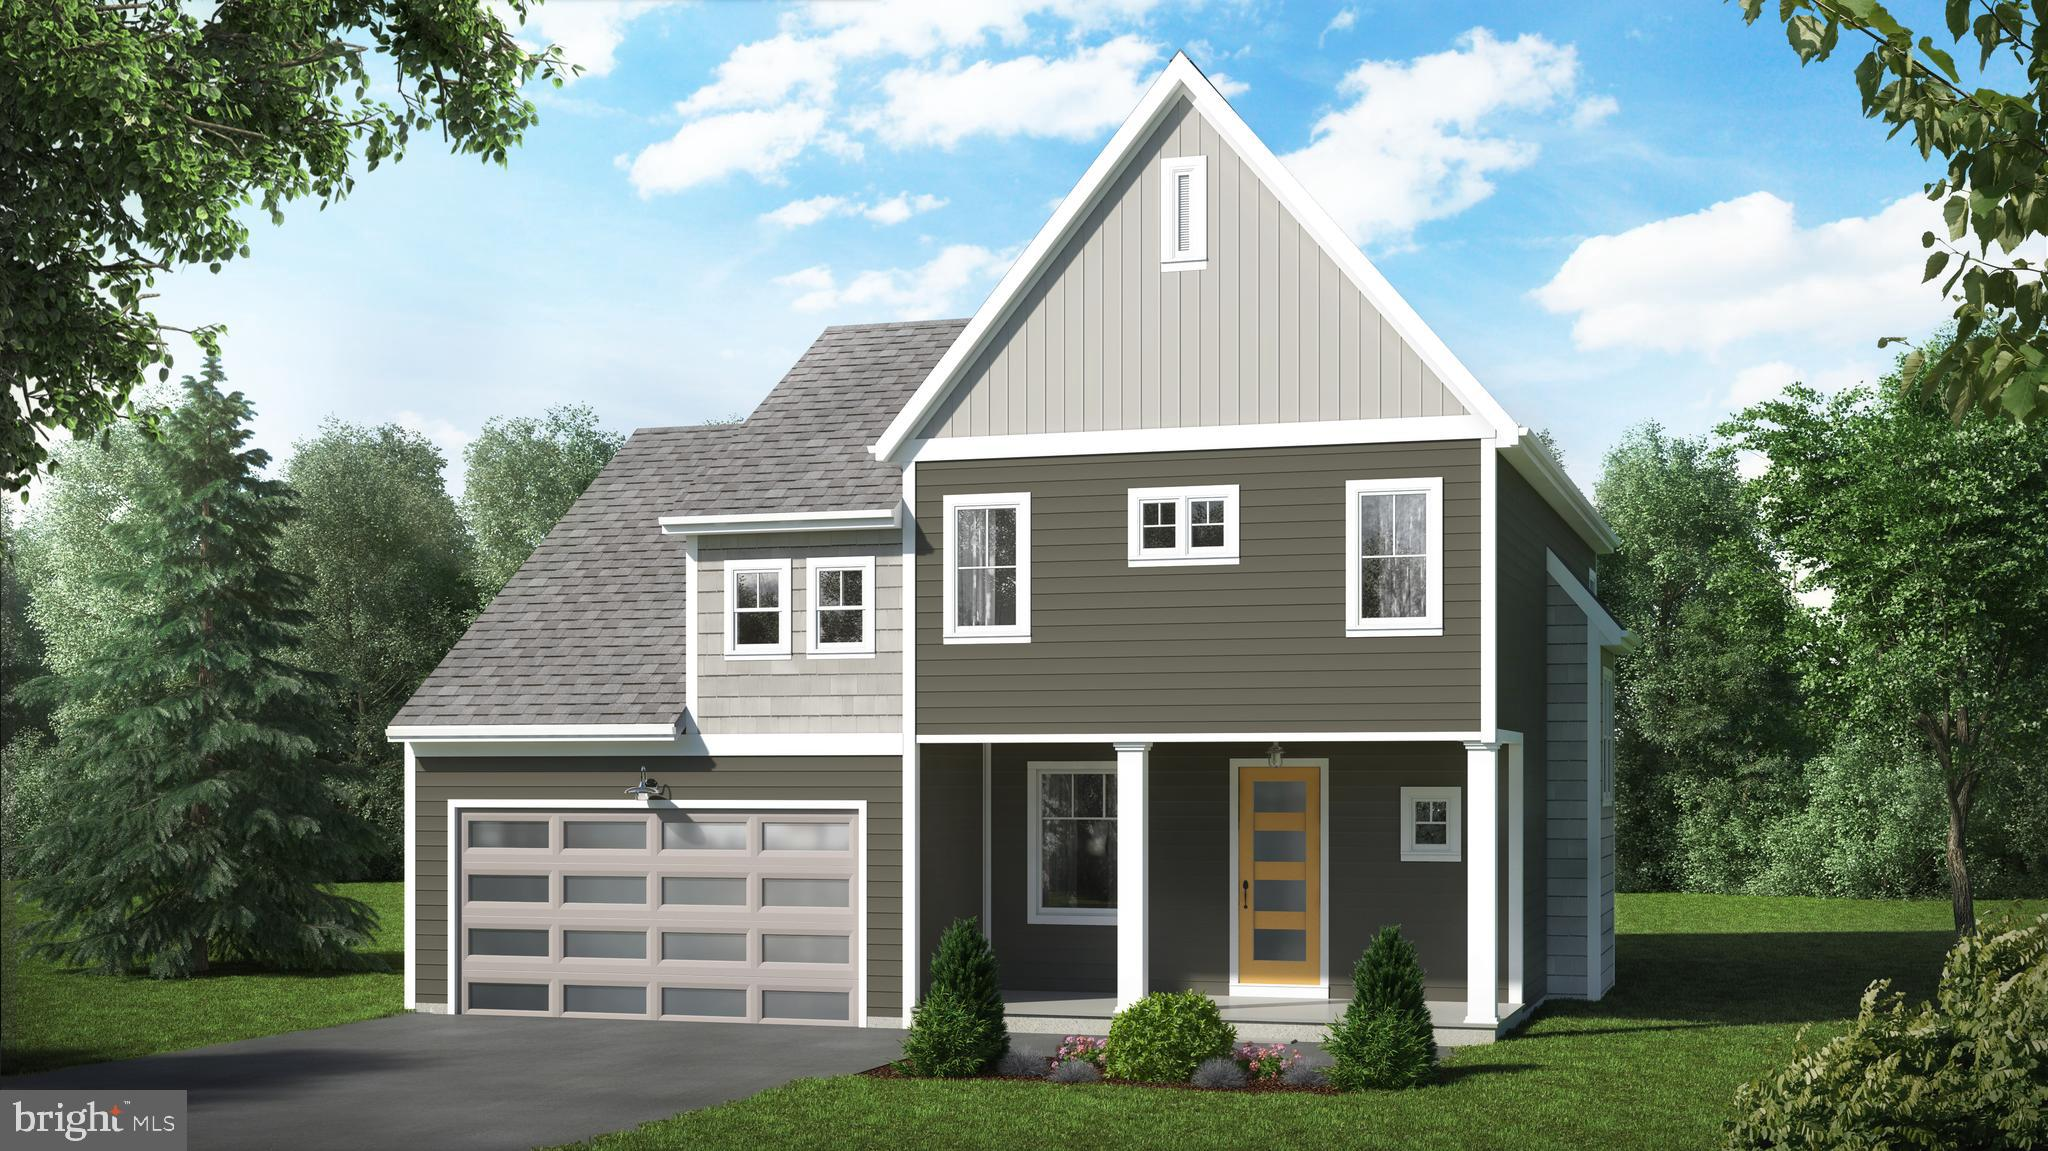 0 THE MONTGOMERY - ALDEN HOMES AT MOUNTAIN MEADOWS, MYERSTOWN, PA 17067